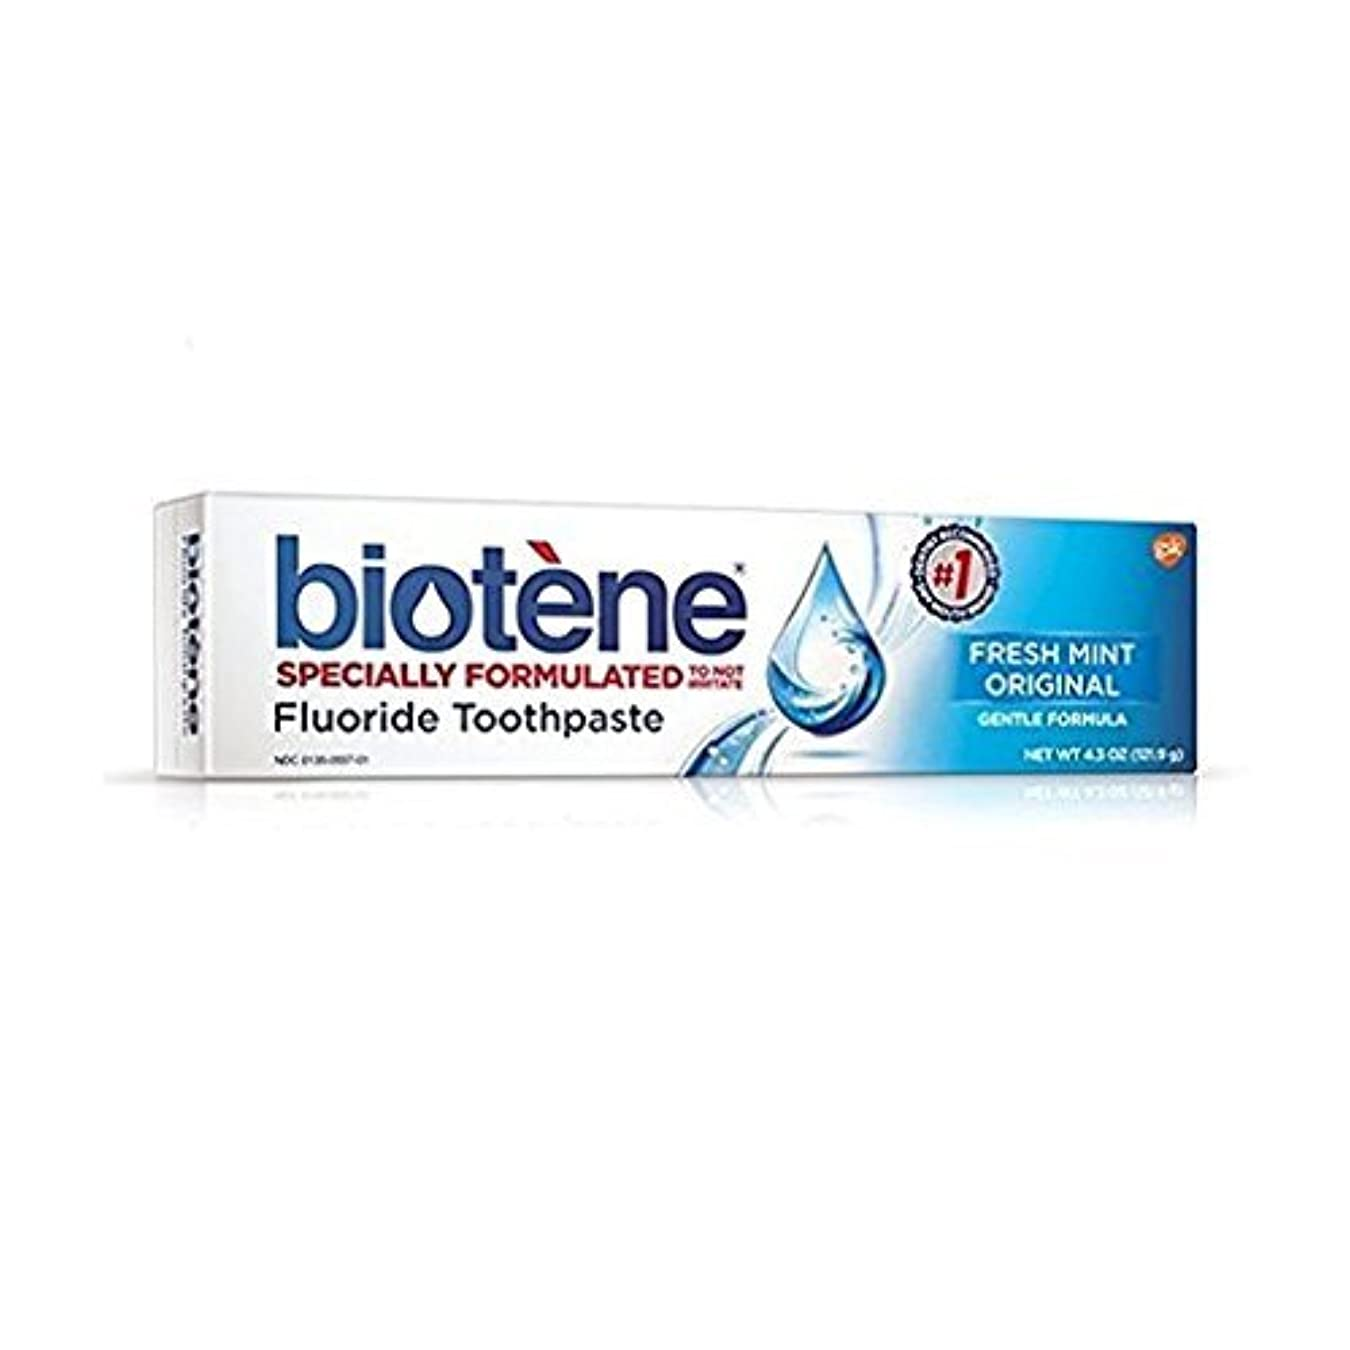 一流貫通するパラダイスBiotene Dry Mouth Fluoride Toothpaste Fresh Mint Original 4.3 Oz. (2 Pack) by Biotene